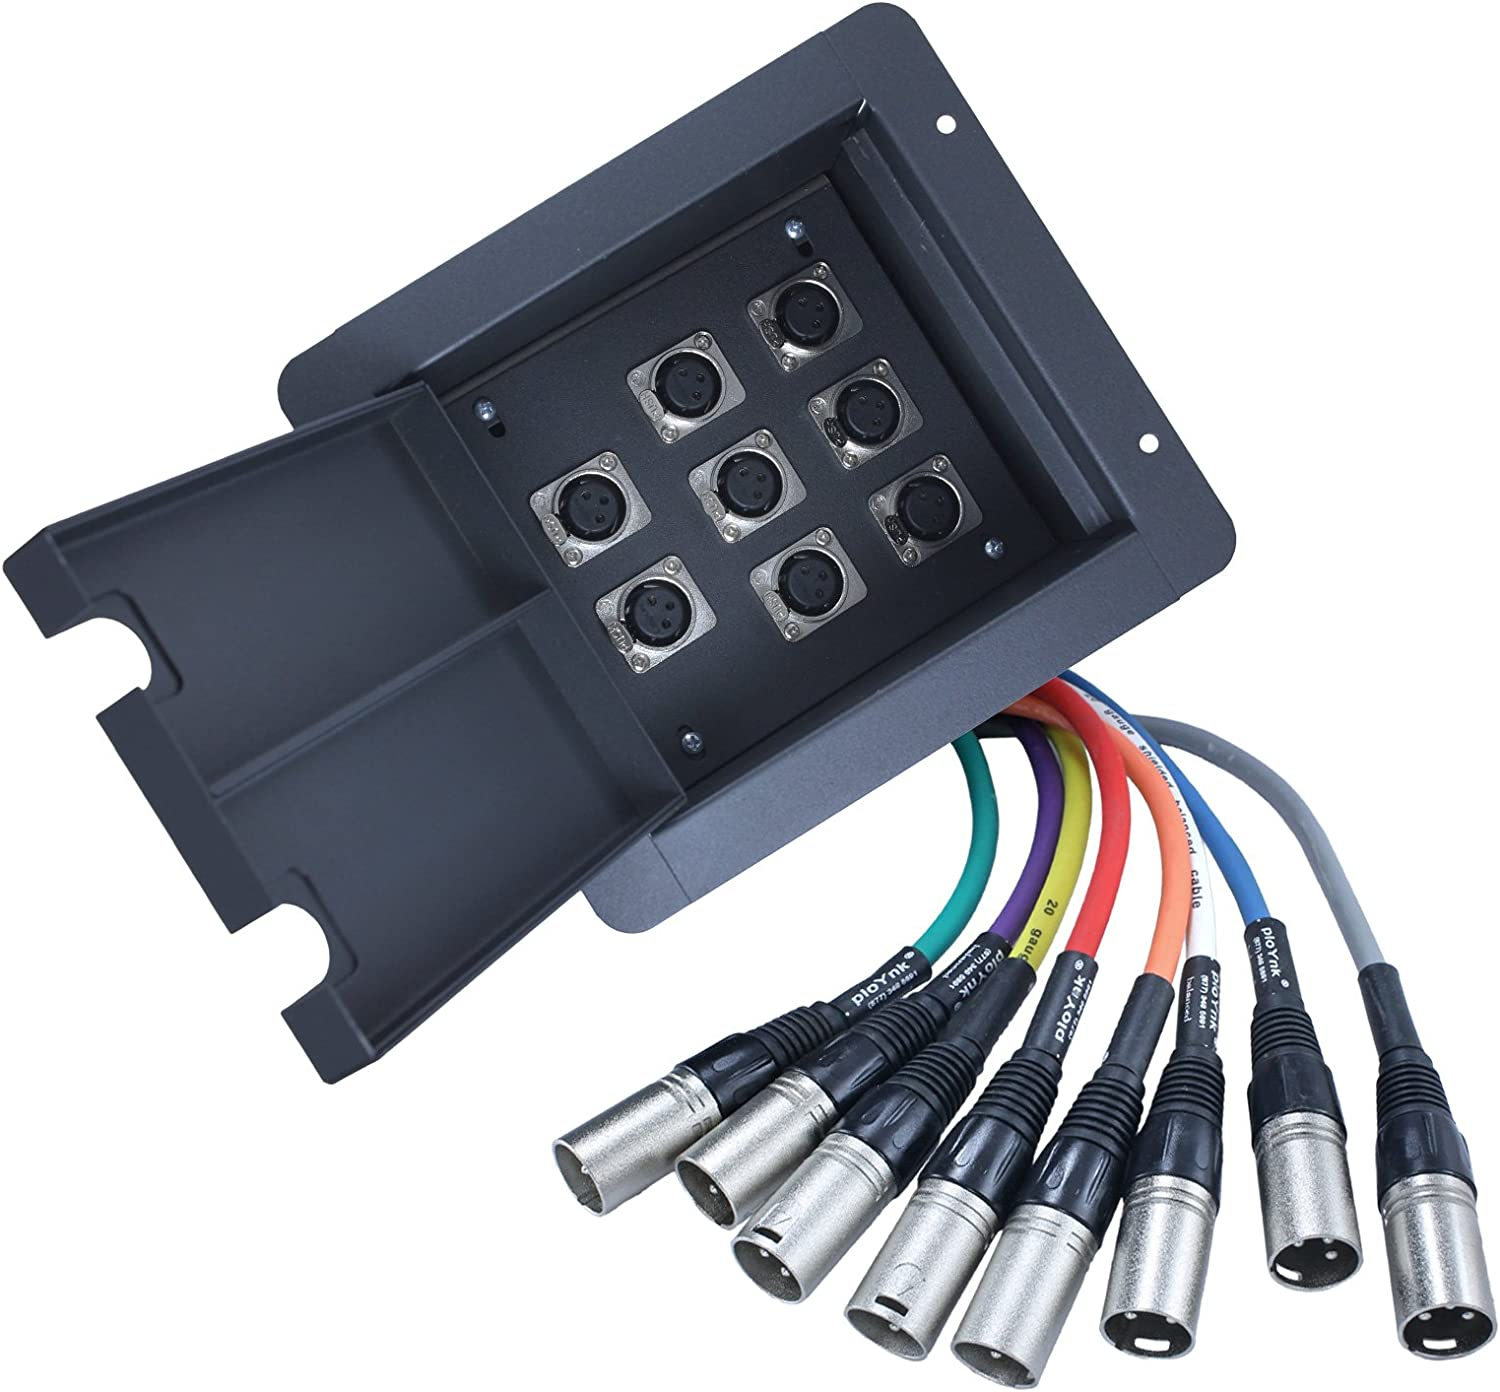 Image of Advance MCS Electronics Pro Audio Recessed Stage in Floor Pocket Box Black with Prewired Connections Microphone Cables